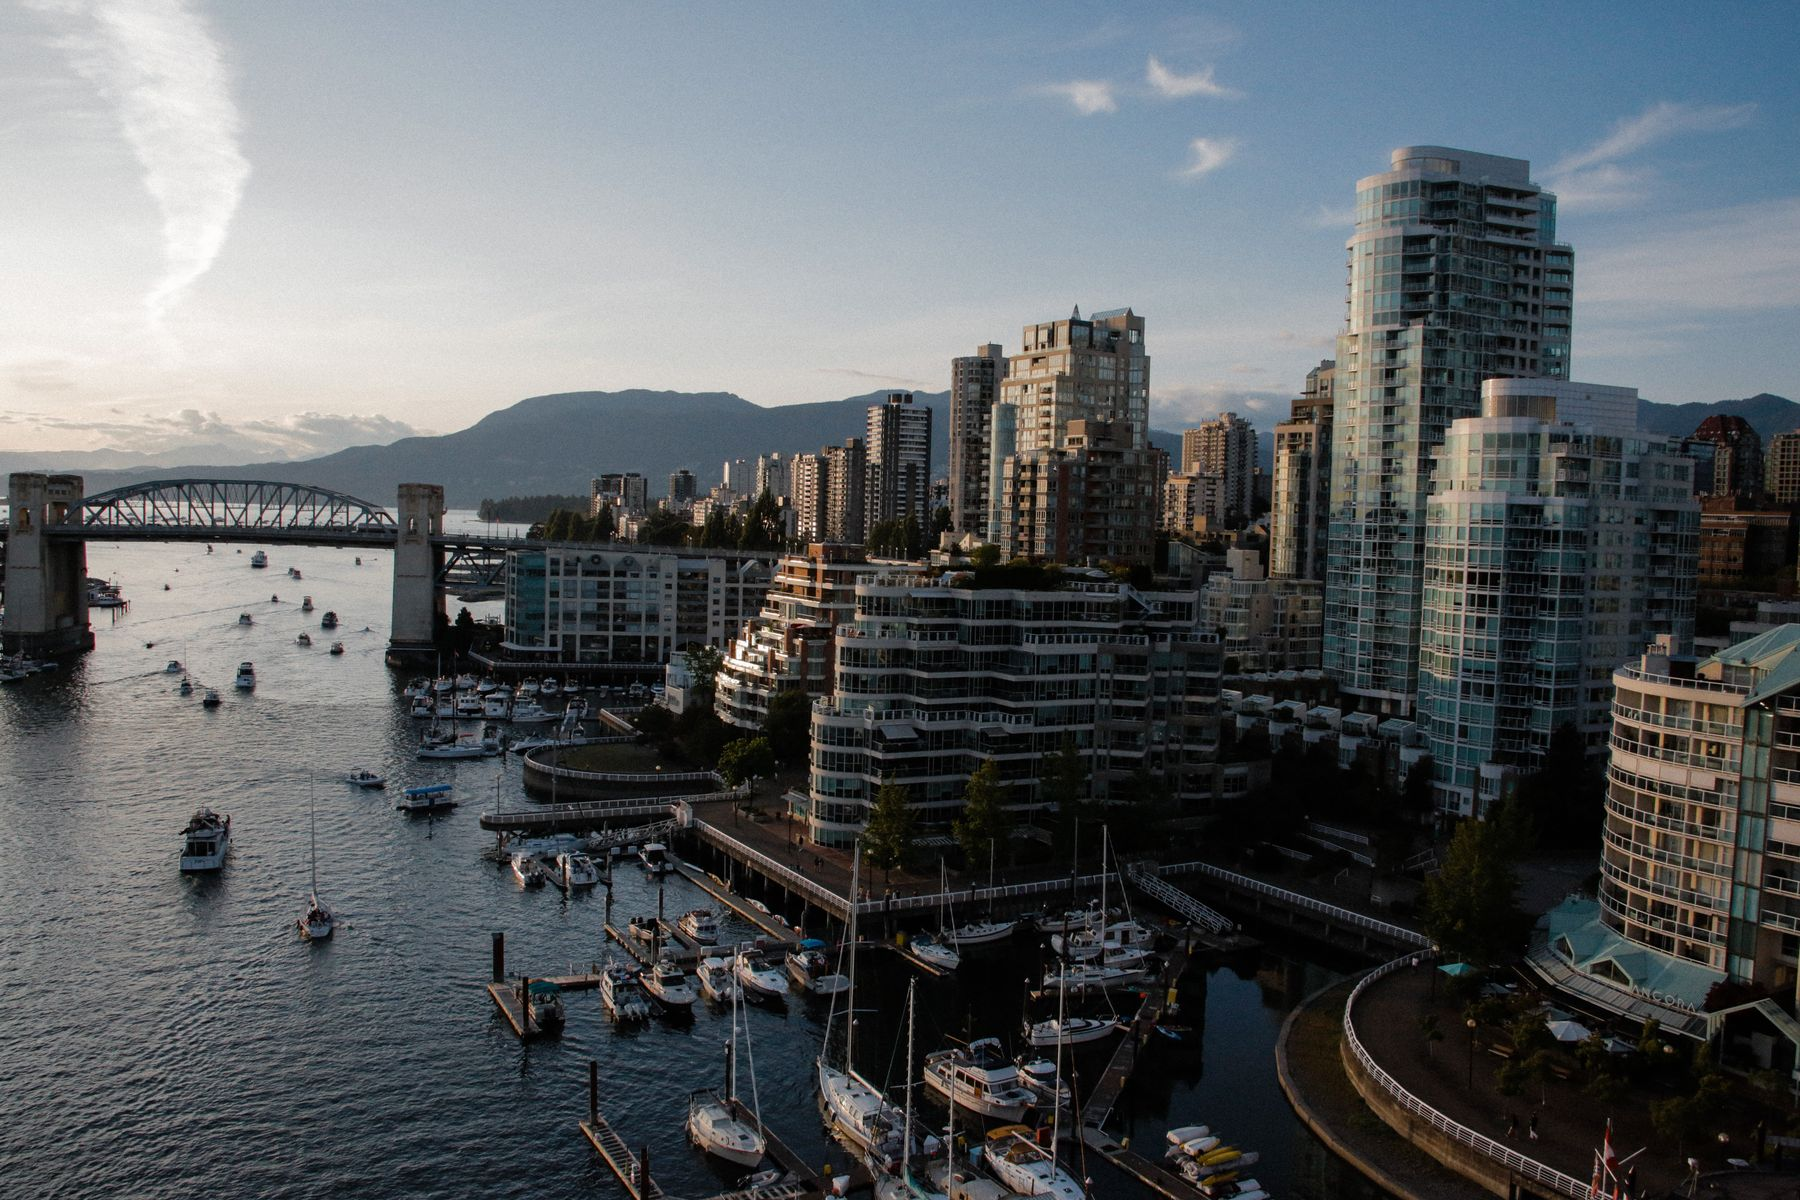 view of Yaletown and Vancouver harbour from above